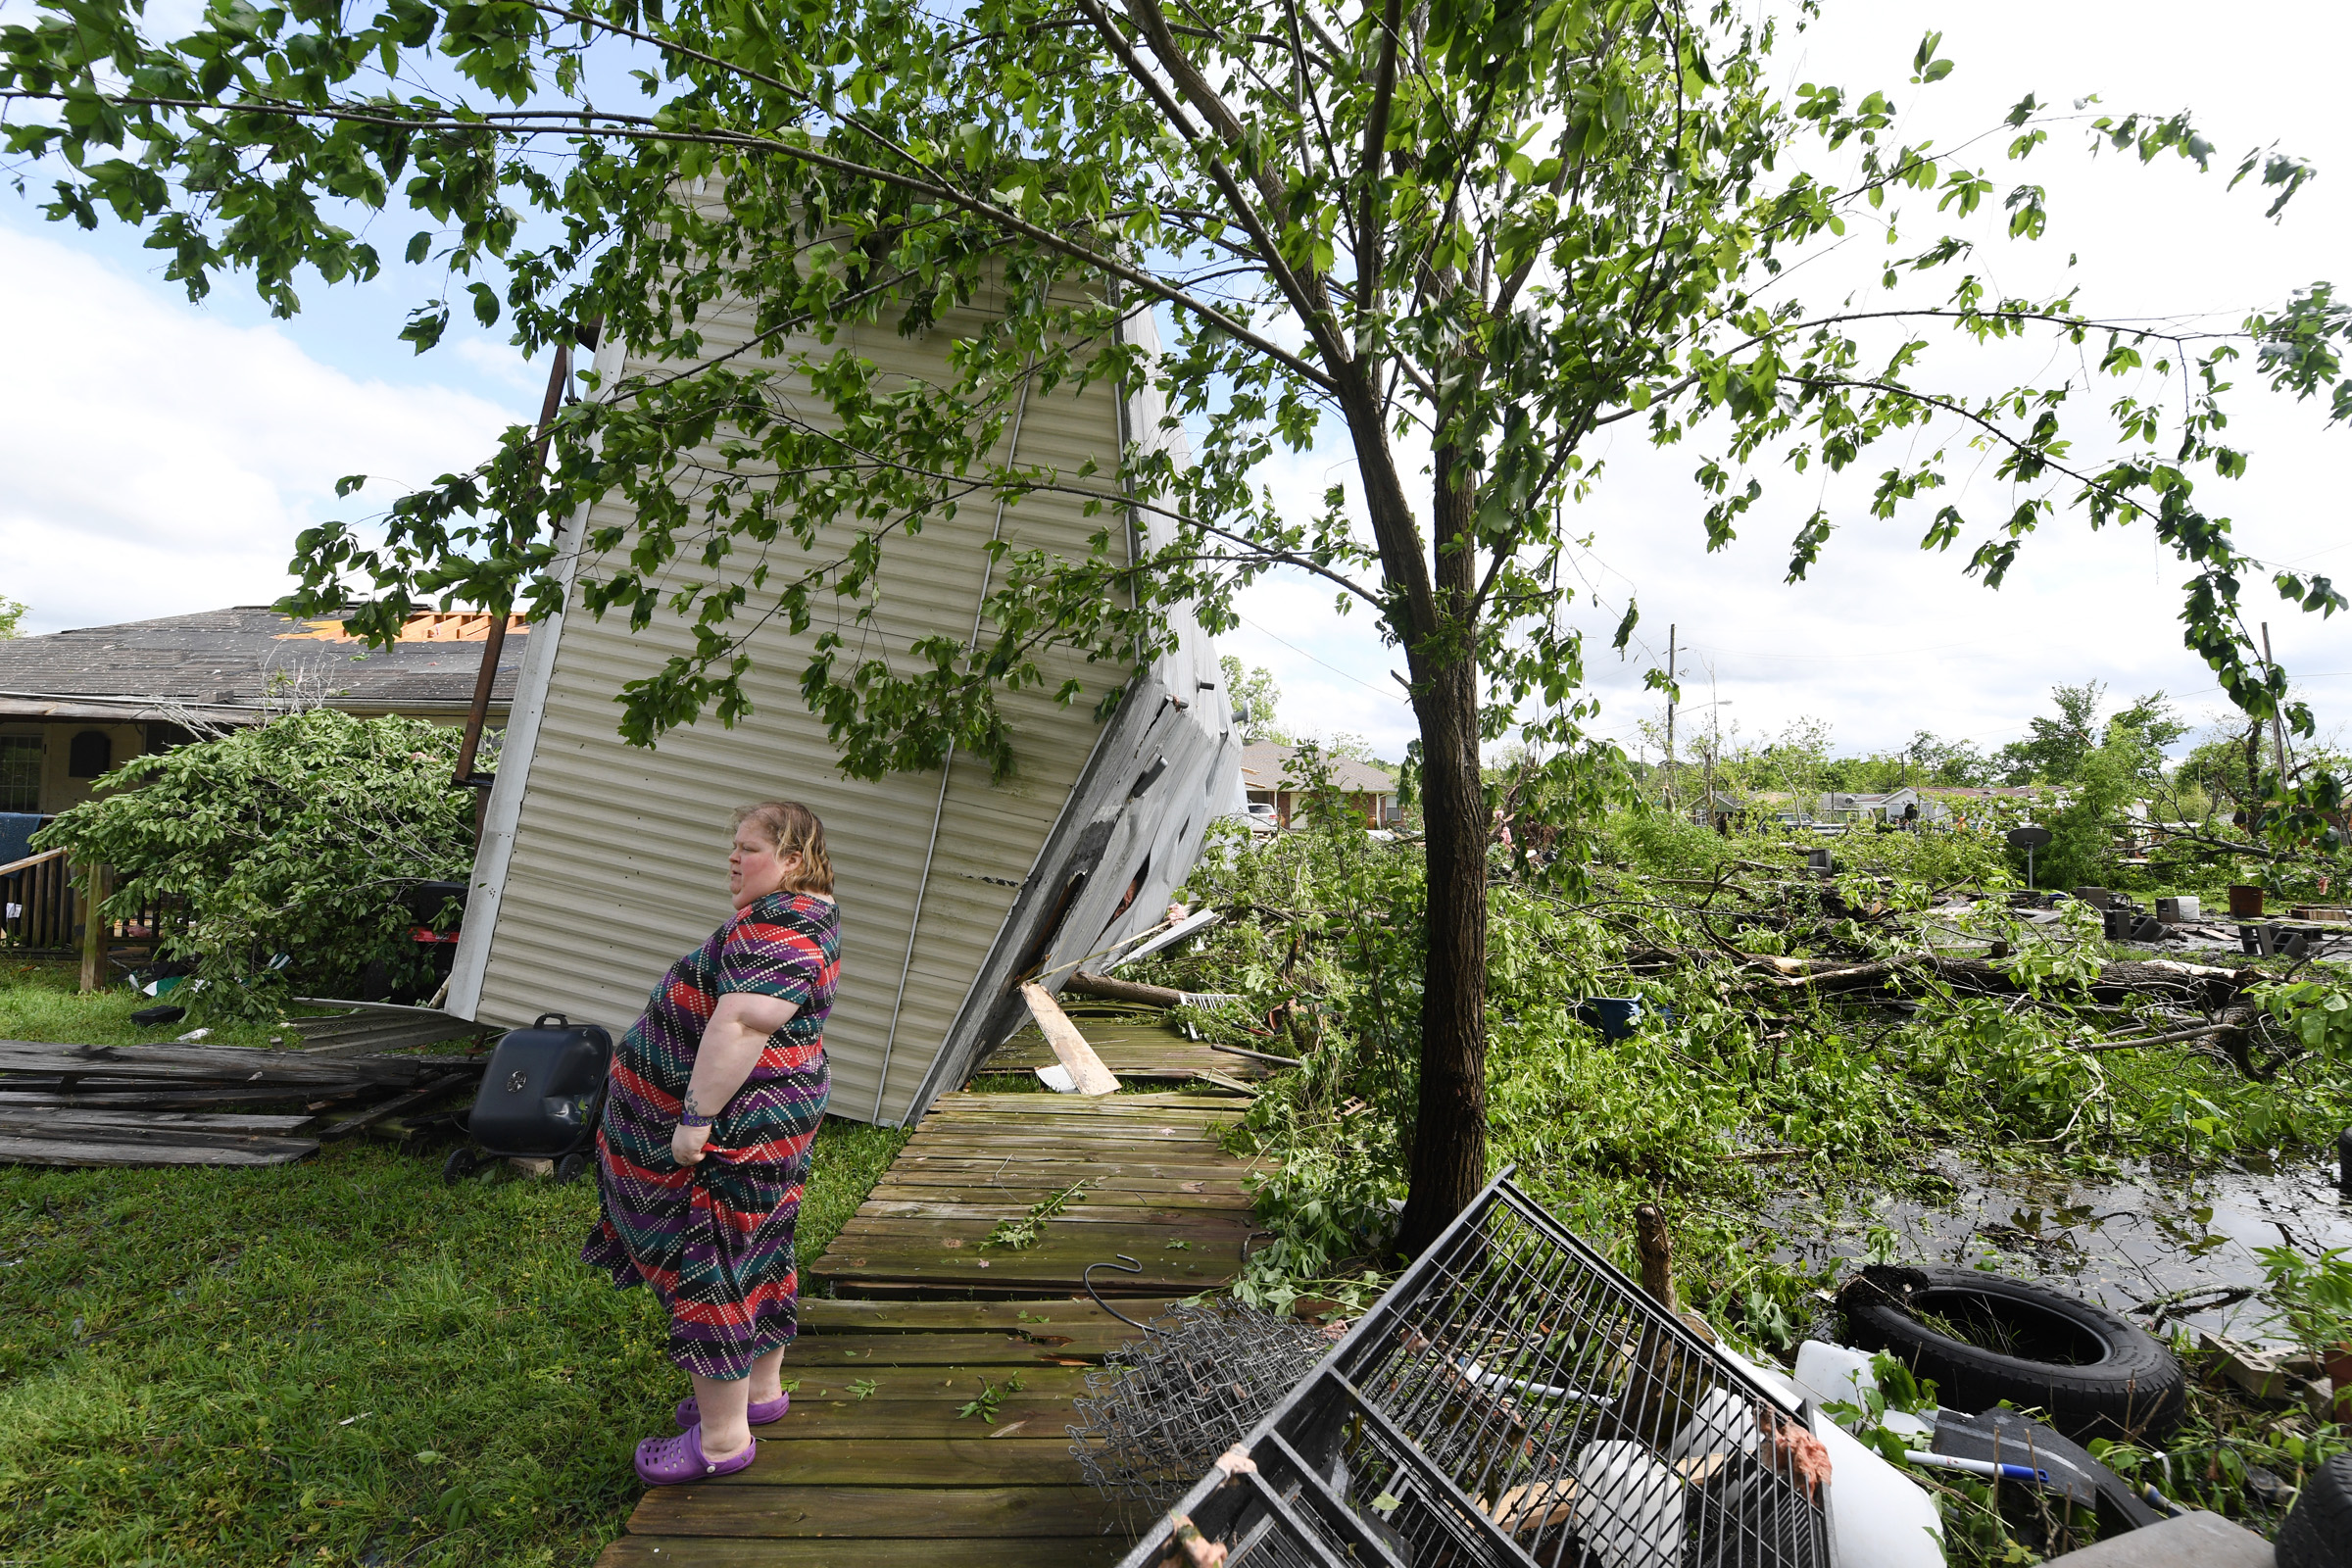 Angel Funk stands in the backyard of her Franklin, Texas, home following severe weather Saturday, April 13, 2019. Funk's house was struck by her neighbor's mobile home, but she and her husband, who were home at the time, escaped unharmed. (Laura McKenzie/The Eagle)